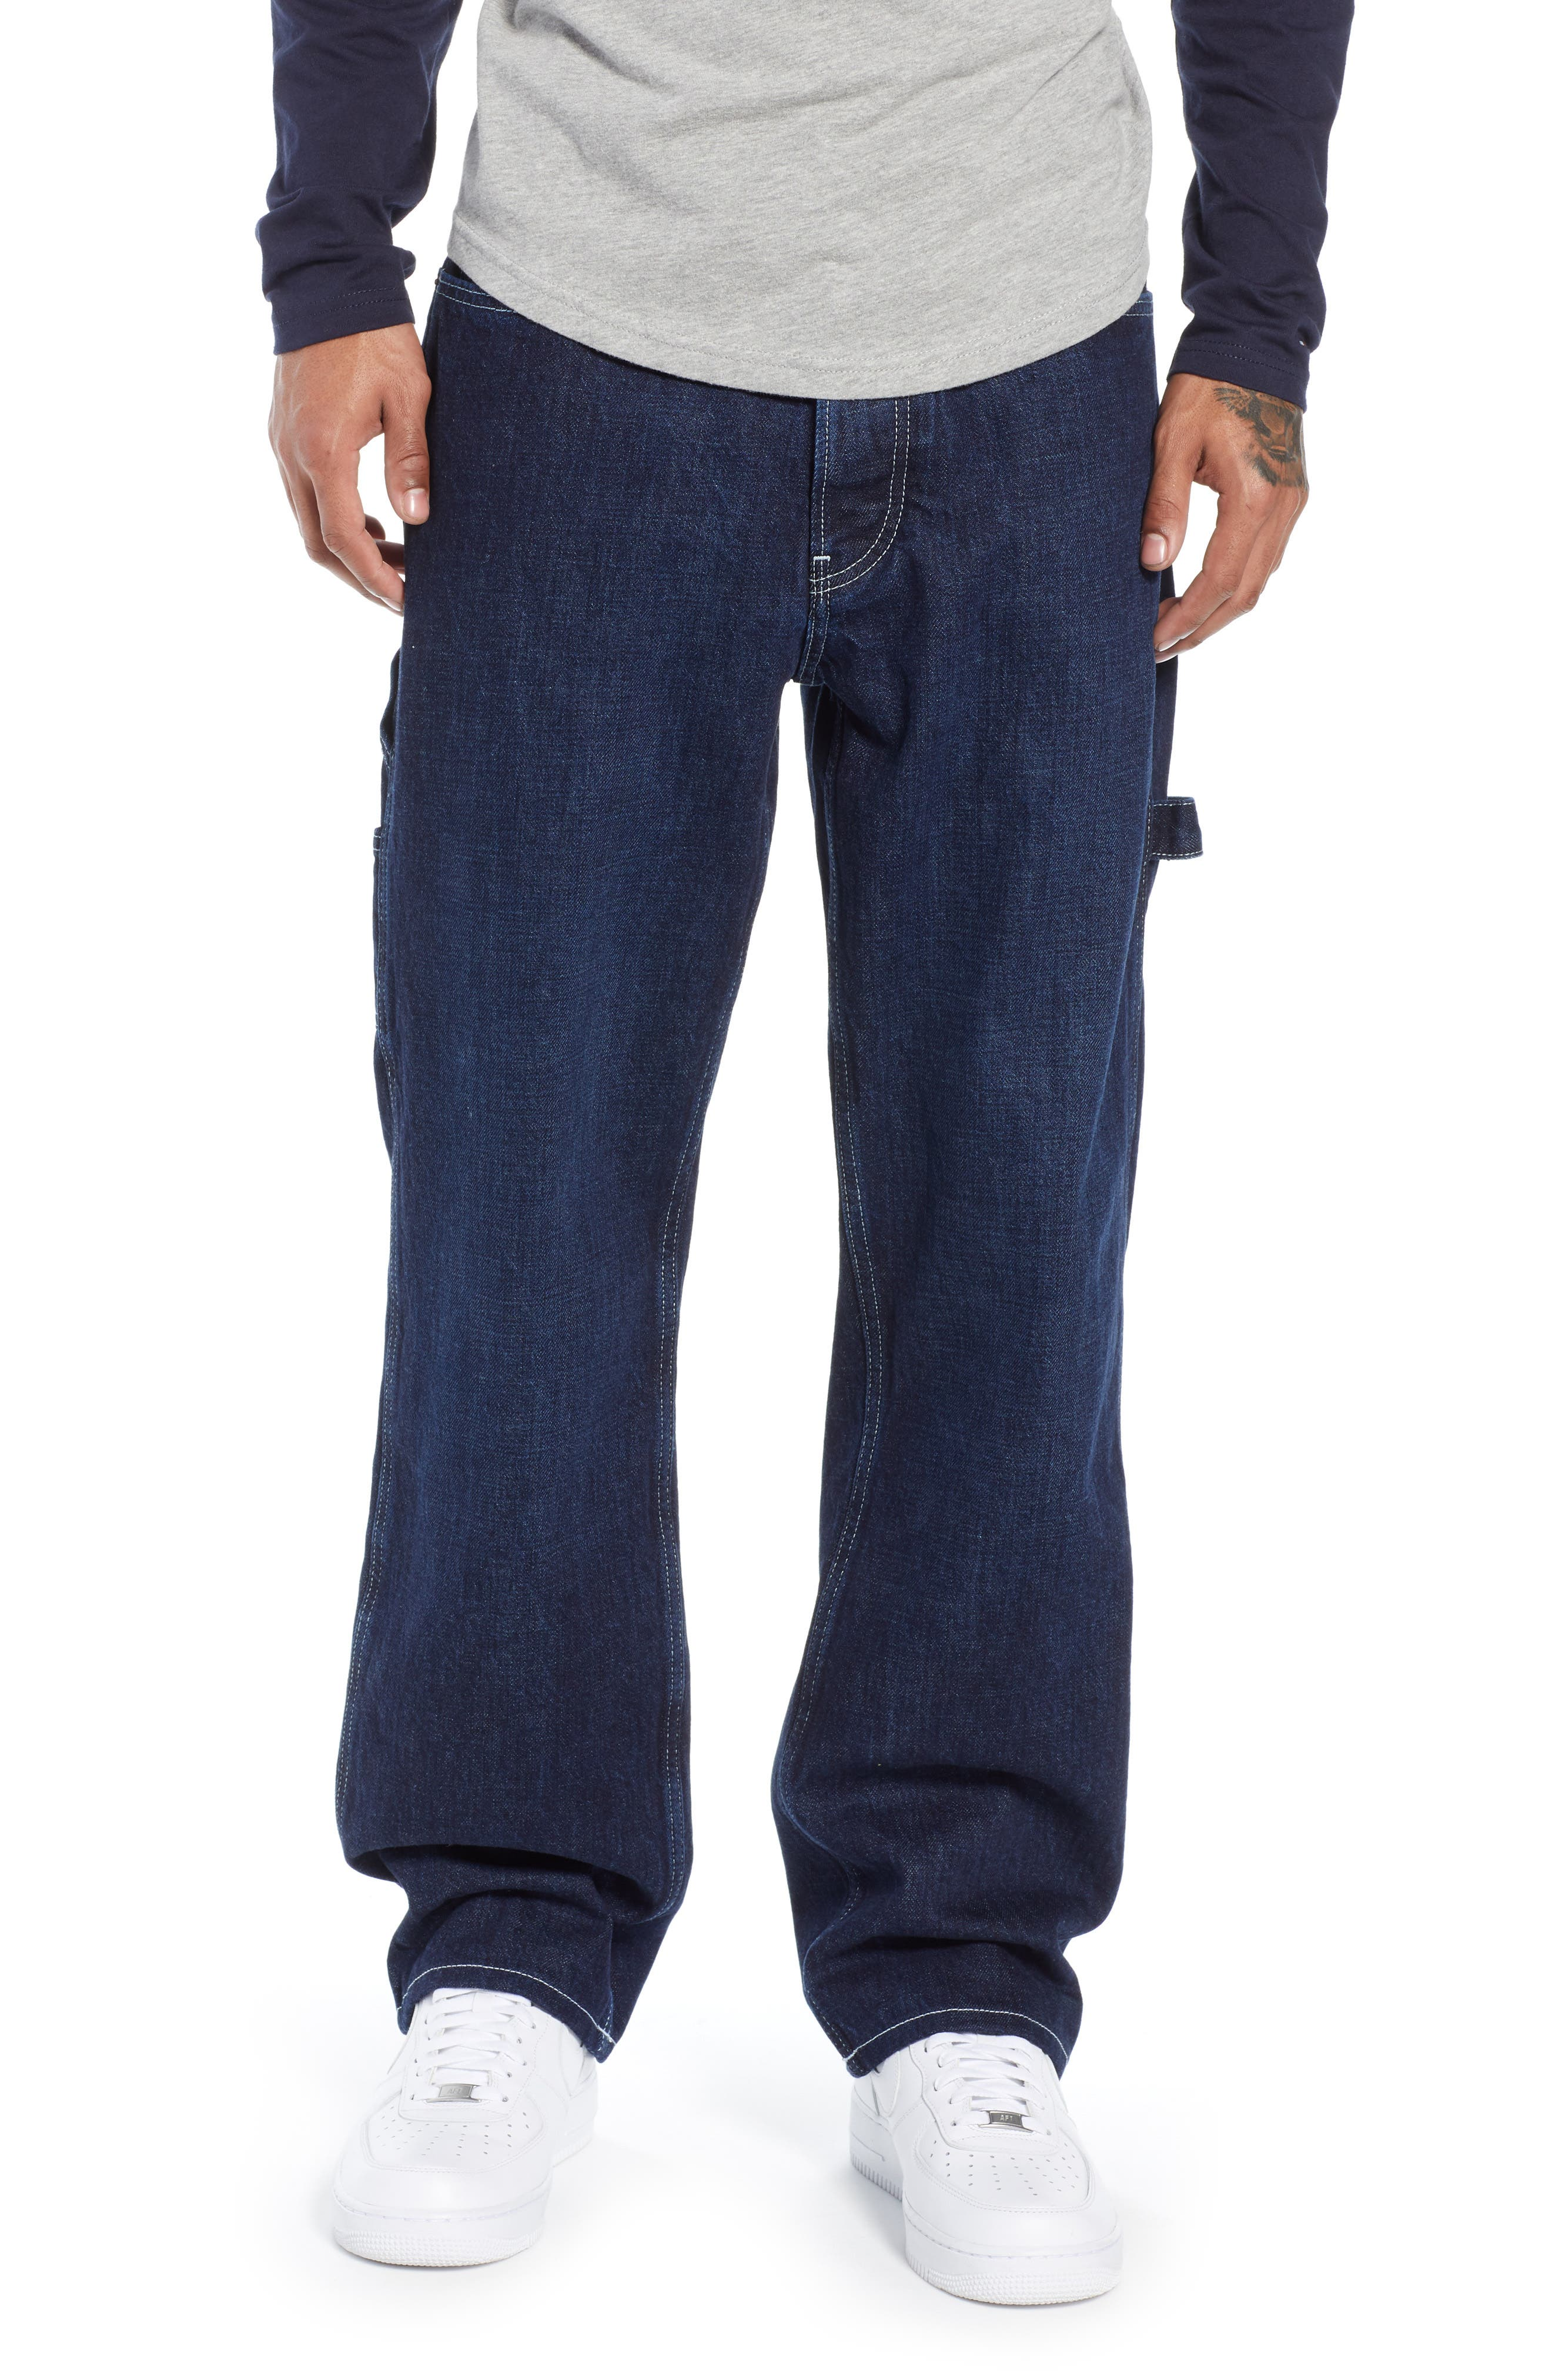 TJM 1986 Relaxed Carpenter Pants,                         Main,                         color, CONTRAST DARK RIG